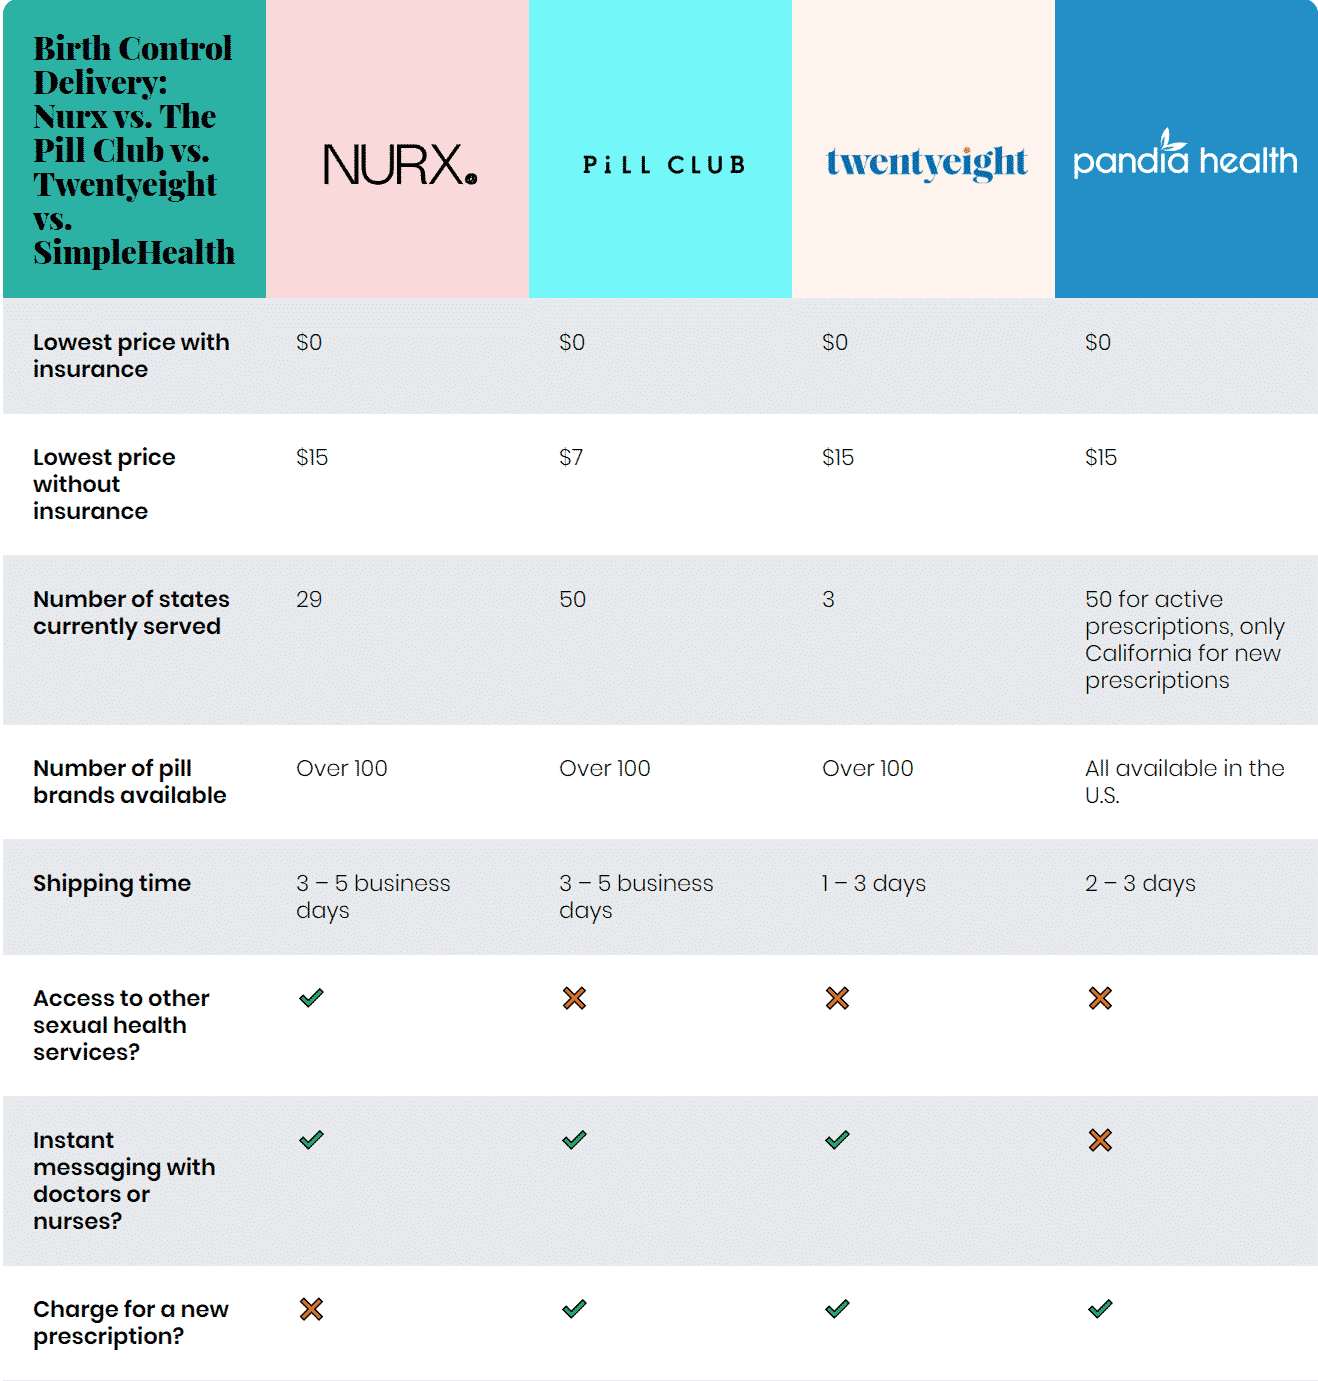 Birth Control Delivery: Nurx vs. The Pill Club vs. Twentyeight vs. SimpleHealth